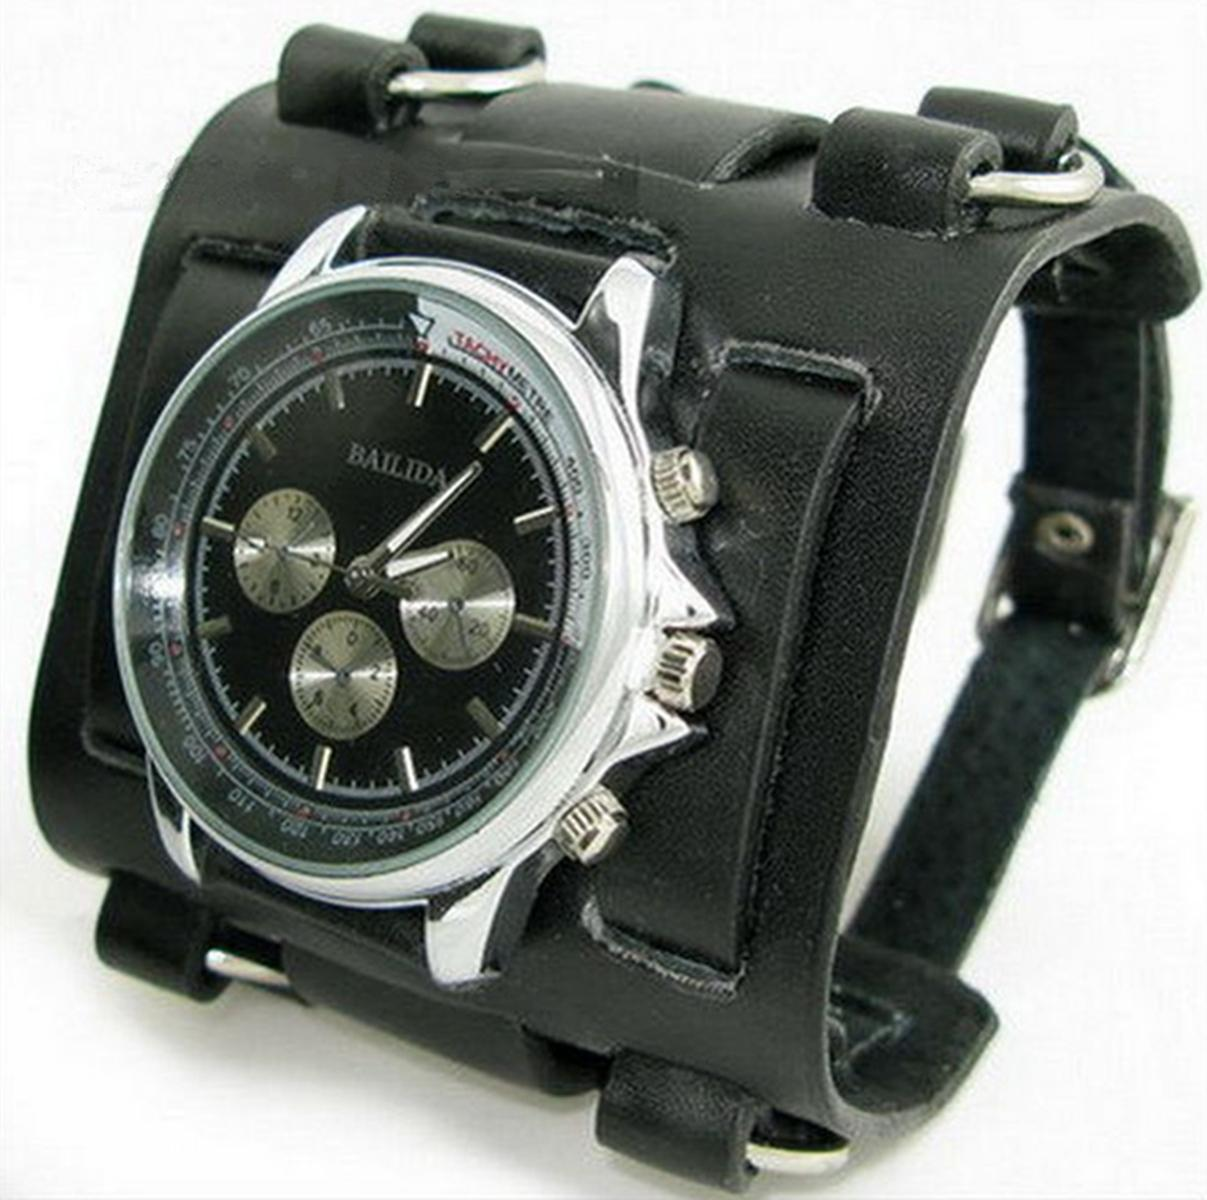 fsahion relaxation punk rock style men women black leather cuff fsahion relaxation punk rock style men women black leather cuff watch bracelet big quartz watches